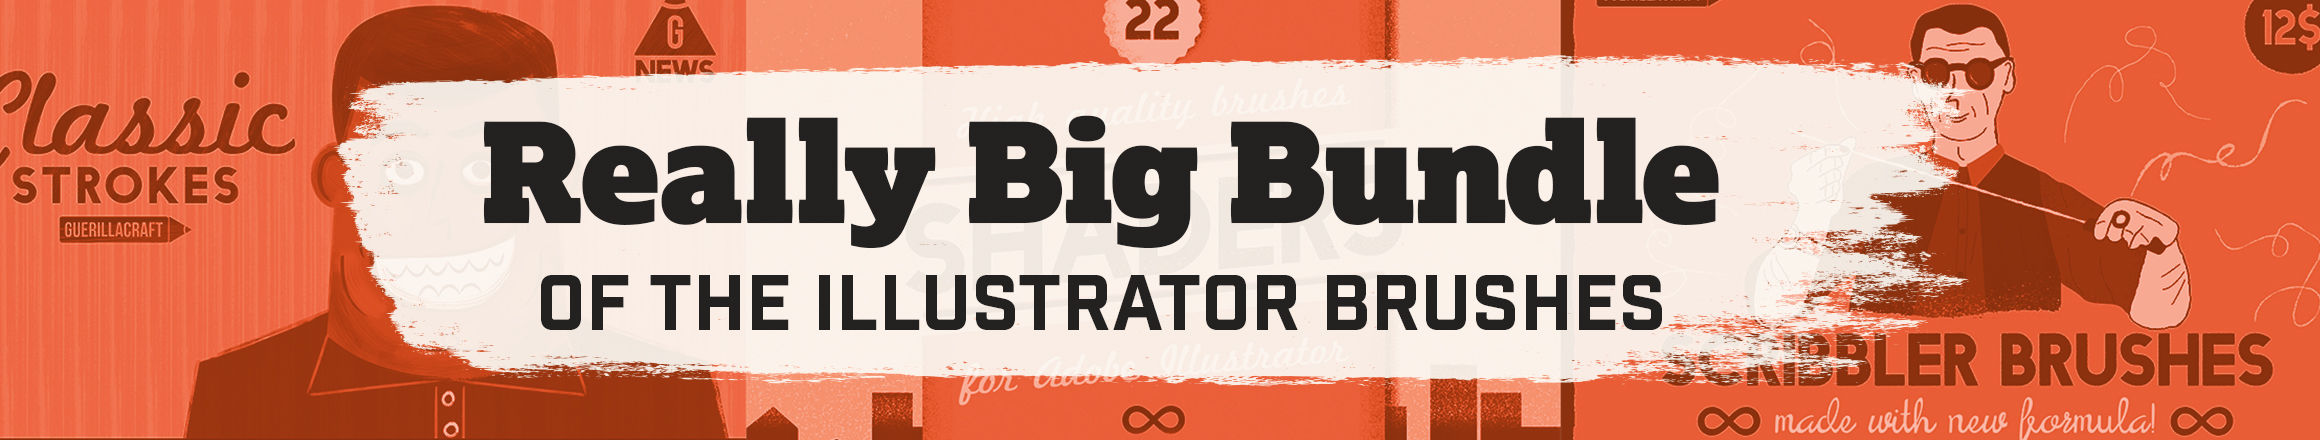 Big Bundle of Adobe Illustrator Brushes - Get 327 brushes for Adobe Illustrator for SALE PRICE NOW!